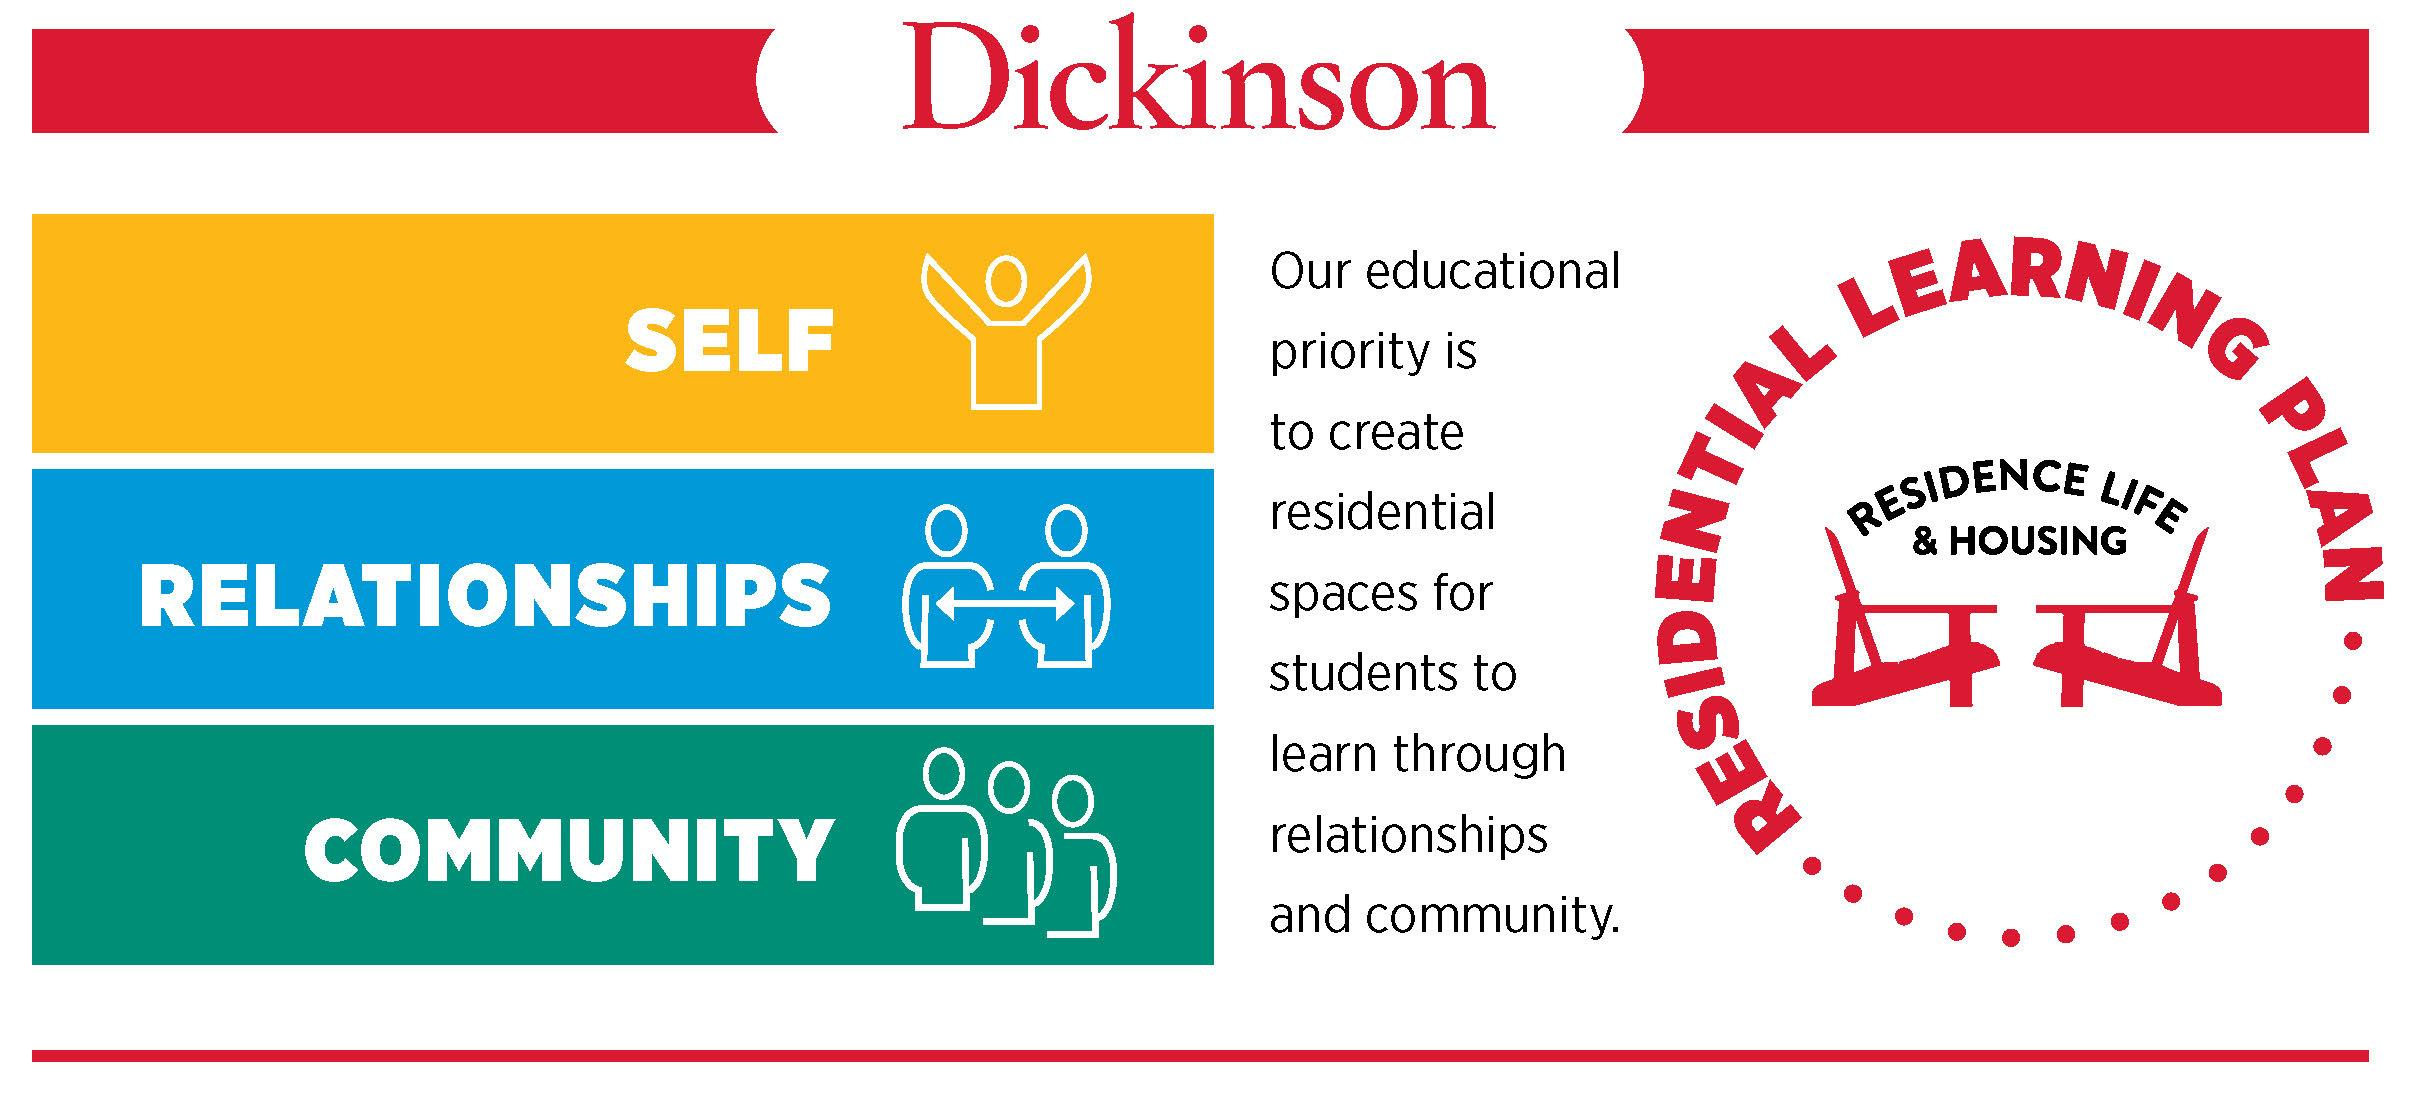 Image highlighting three learning goals for Residence Life & Housing:  self, relationships, and community.